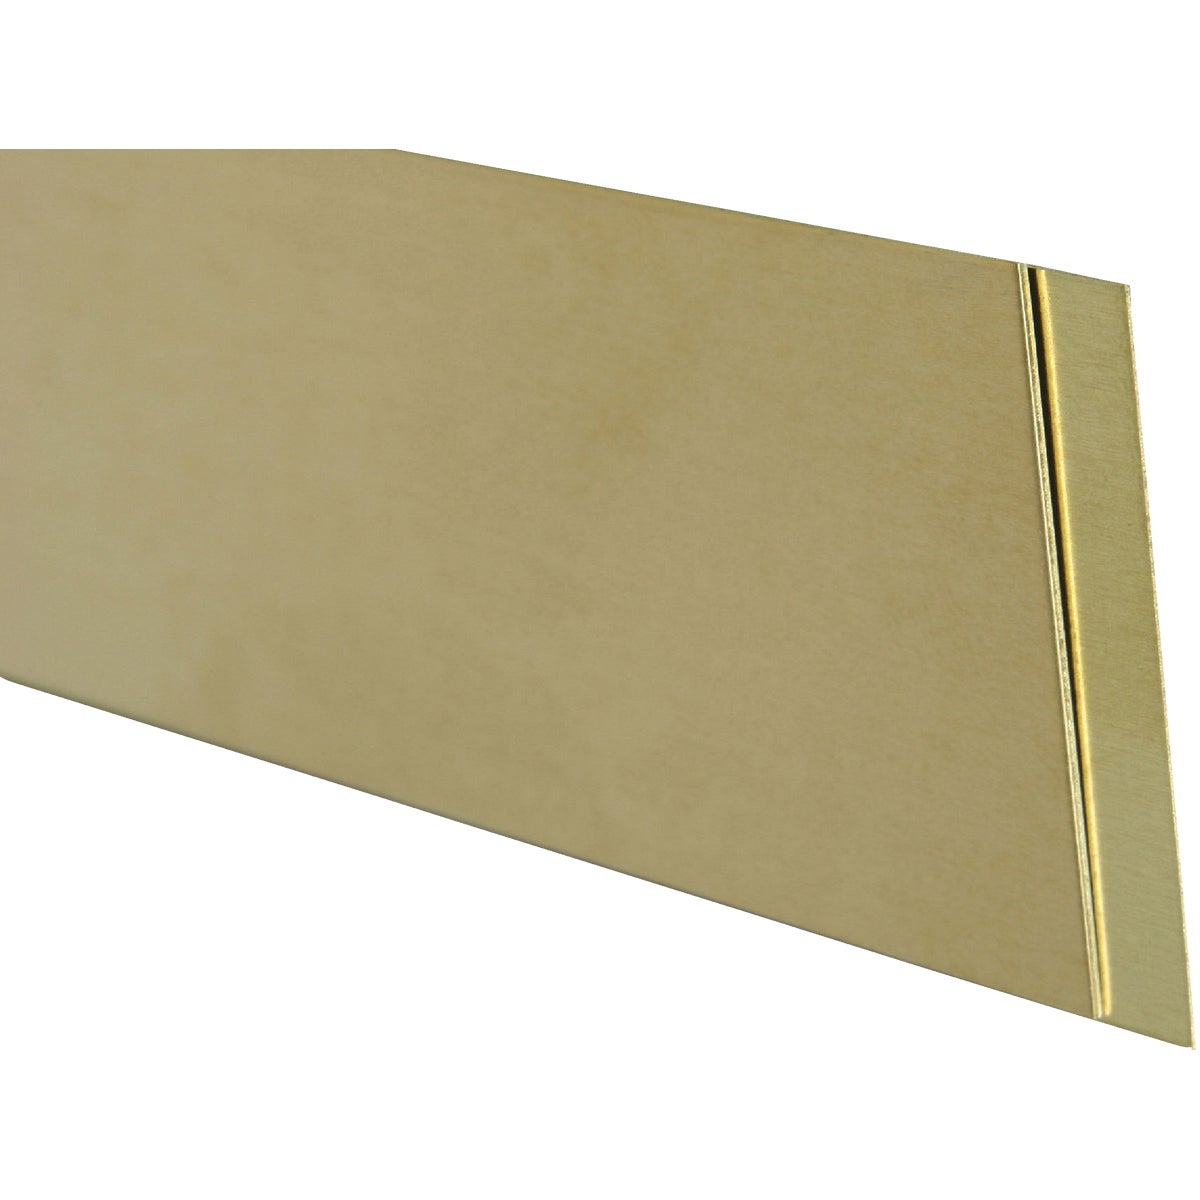 .064X1/4X12 BRASS STRIP - 8245 by K&s Precision Metals